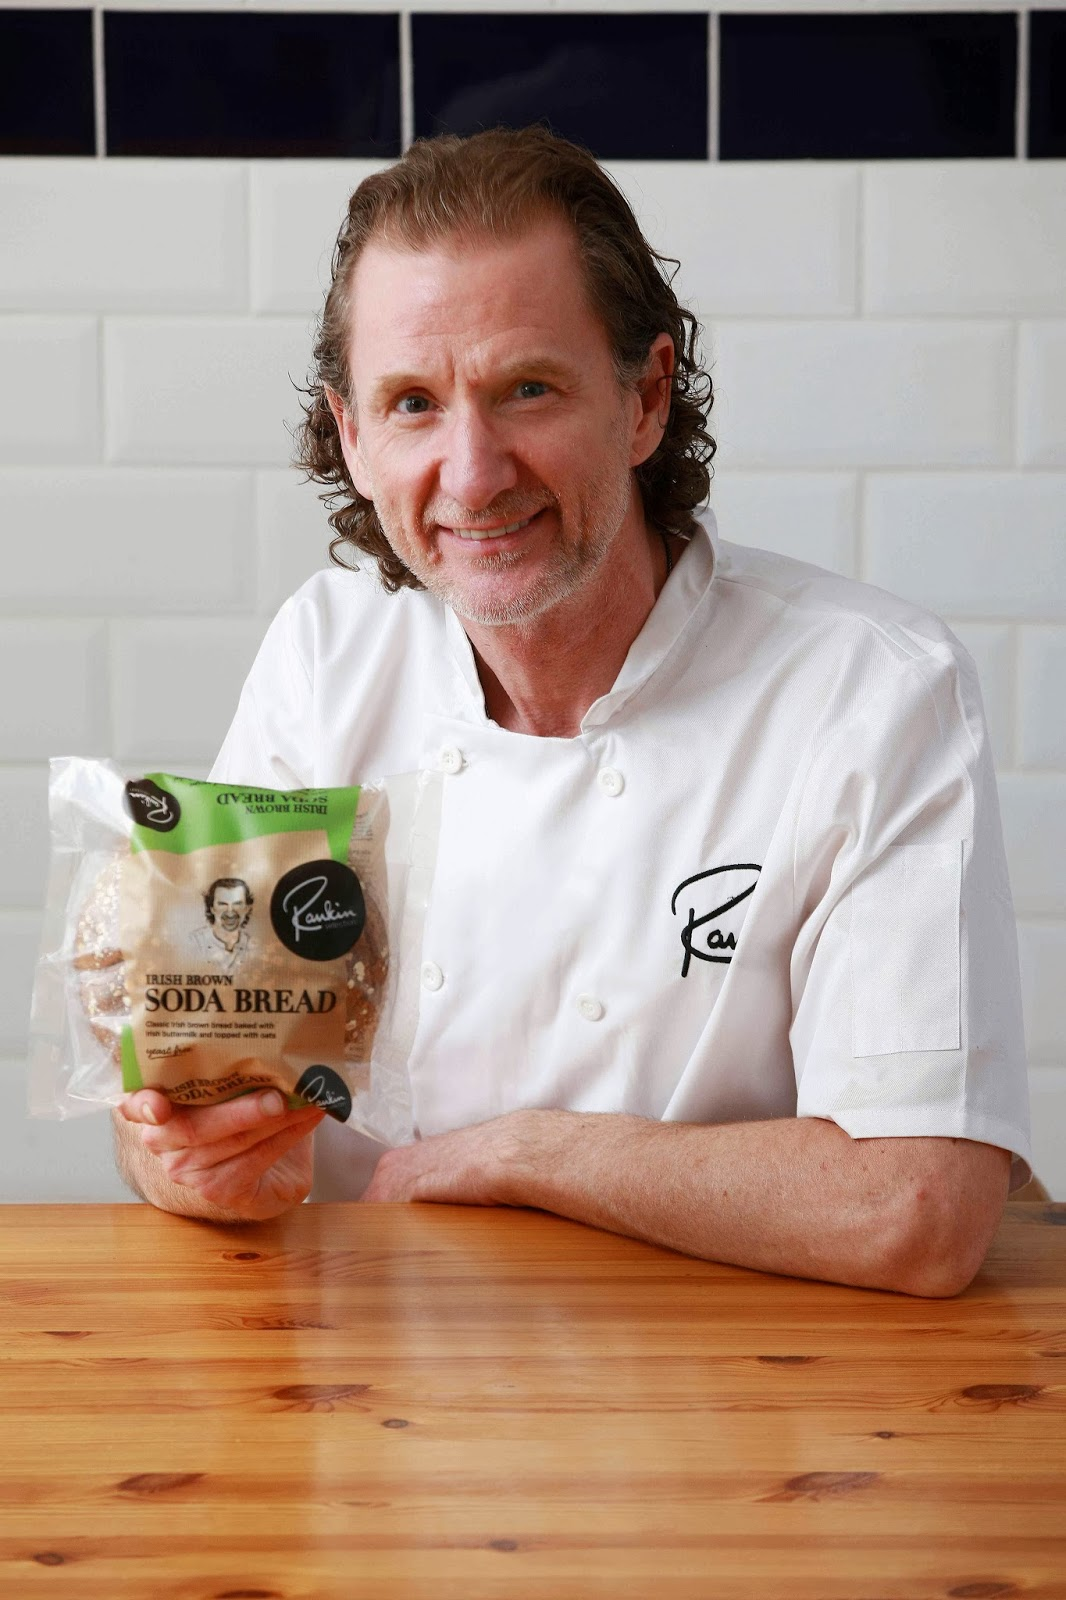 My Interview with Chef Paul Rankin